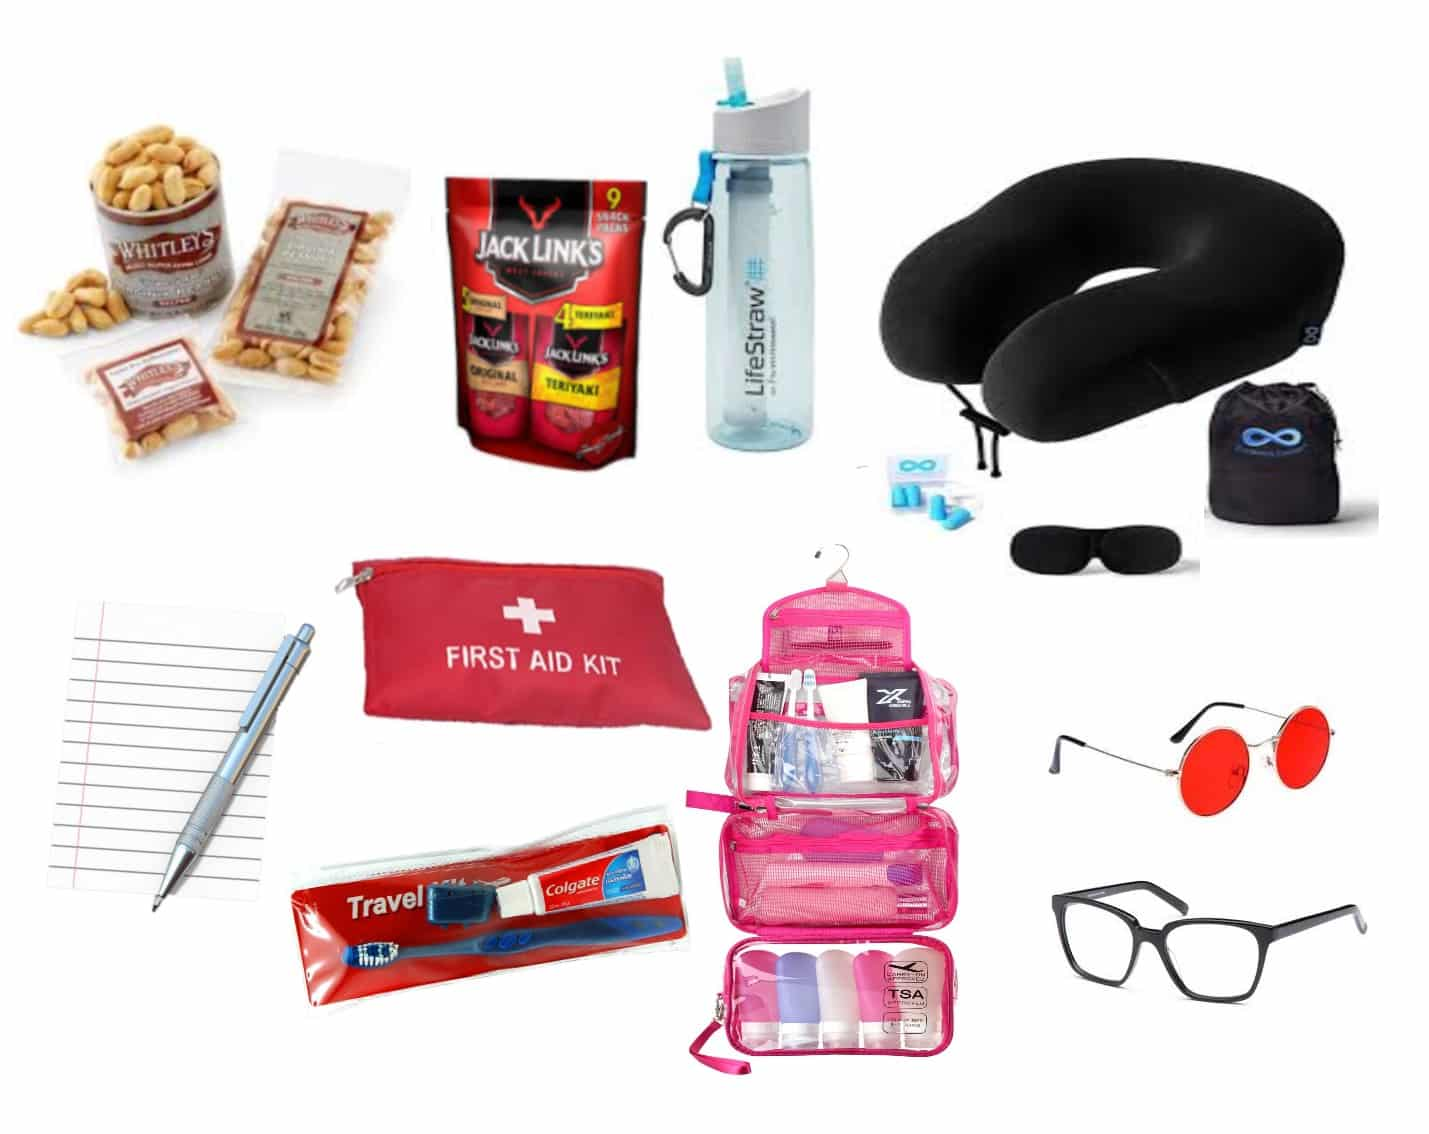 Snacks, Water Bottle, Neck pillow, Sleep asks, First Aid Kit, Ear Plugs, Jack Links, Toothbrush and Toothpaste, Hygiene Kit, Pen and Paper, Sunglasses, Reading Glasses